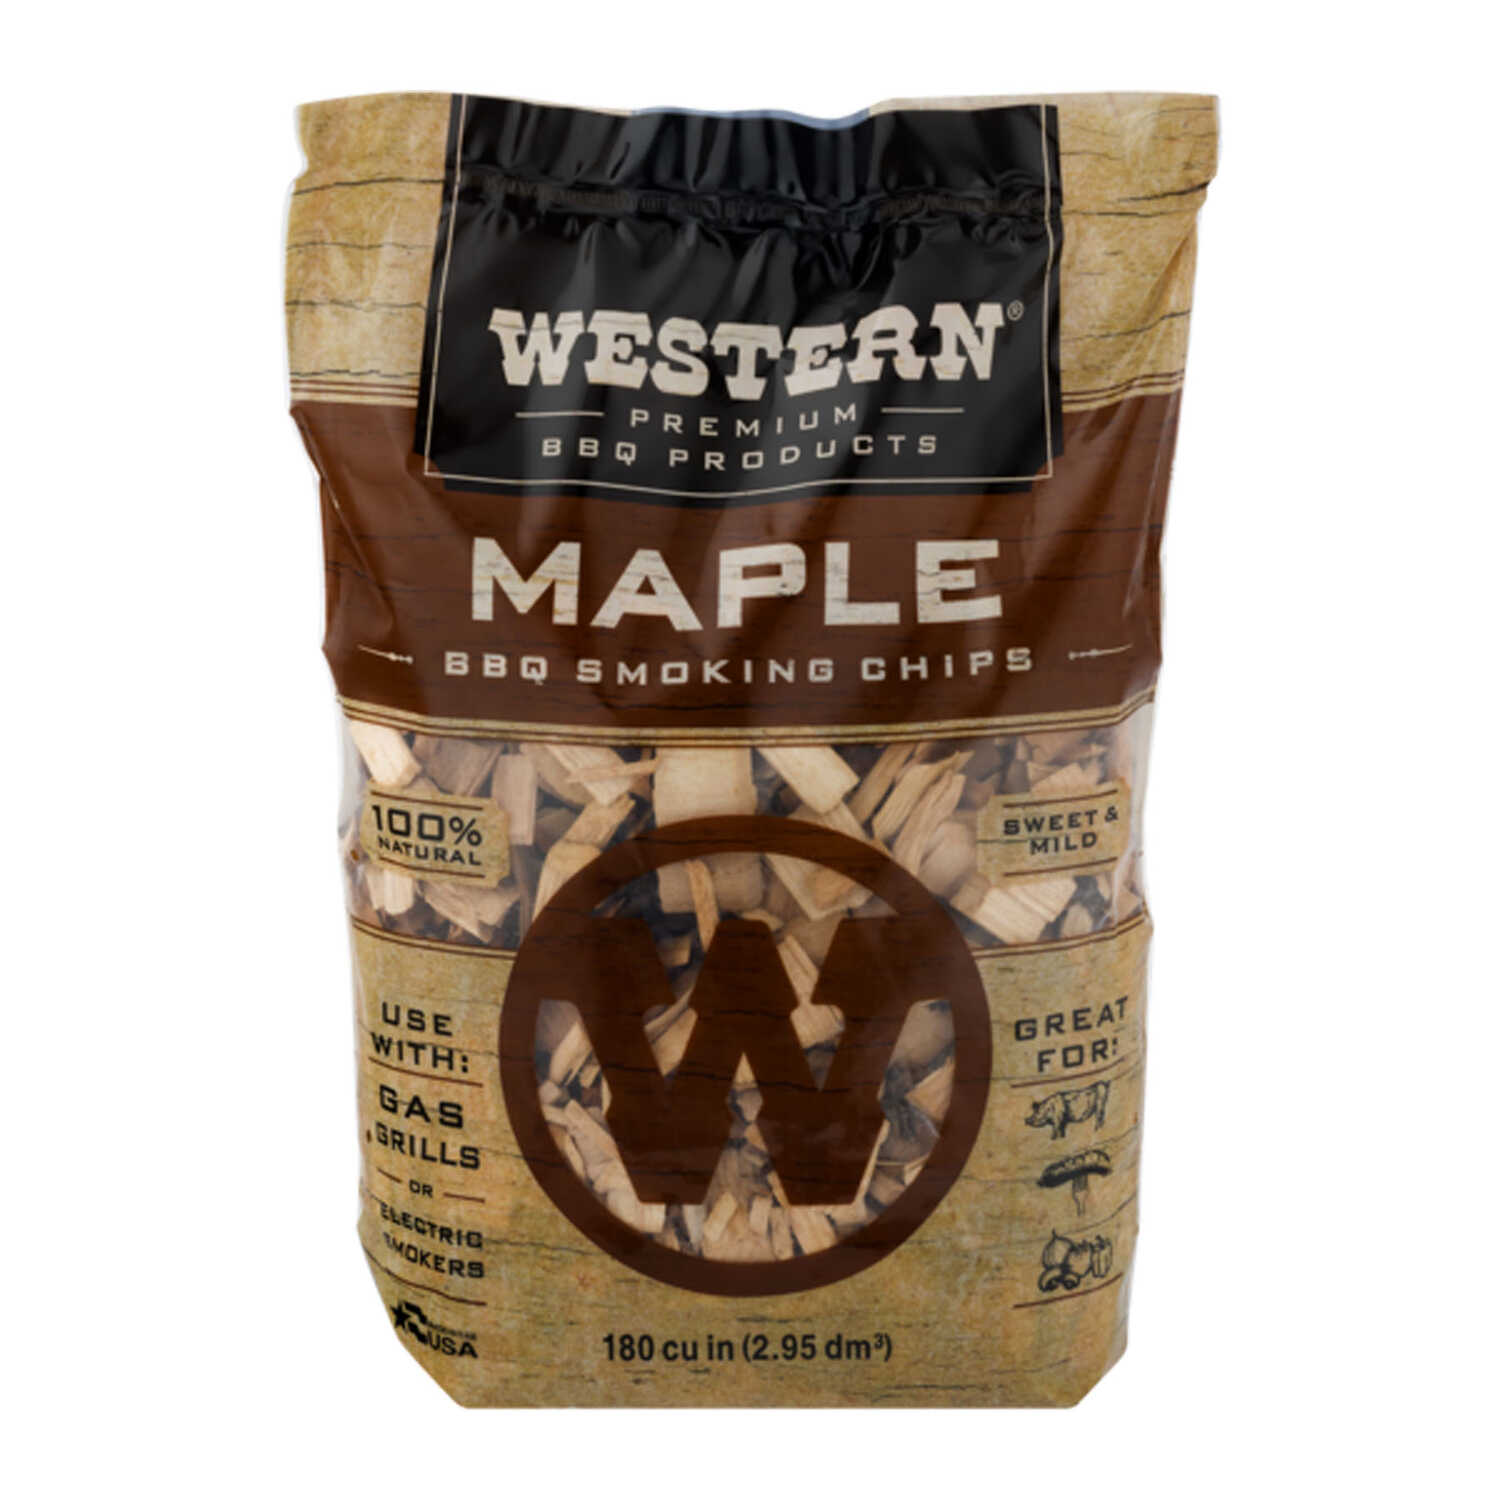 Western  Maple  Wood Smoking Chips  180 cu. in.